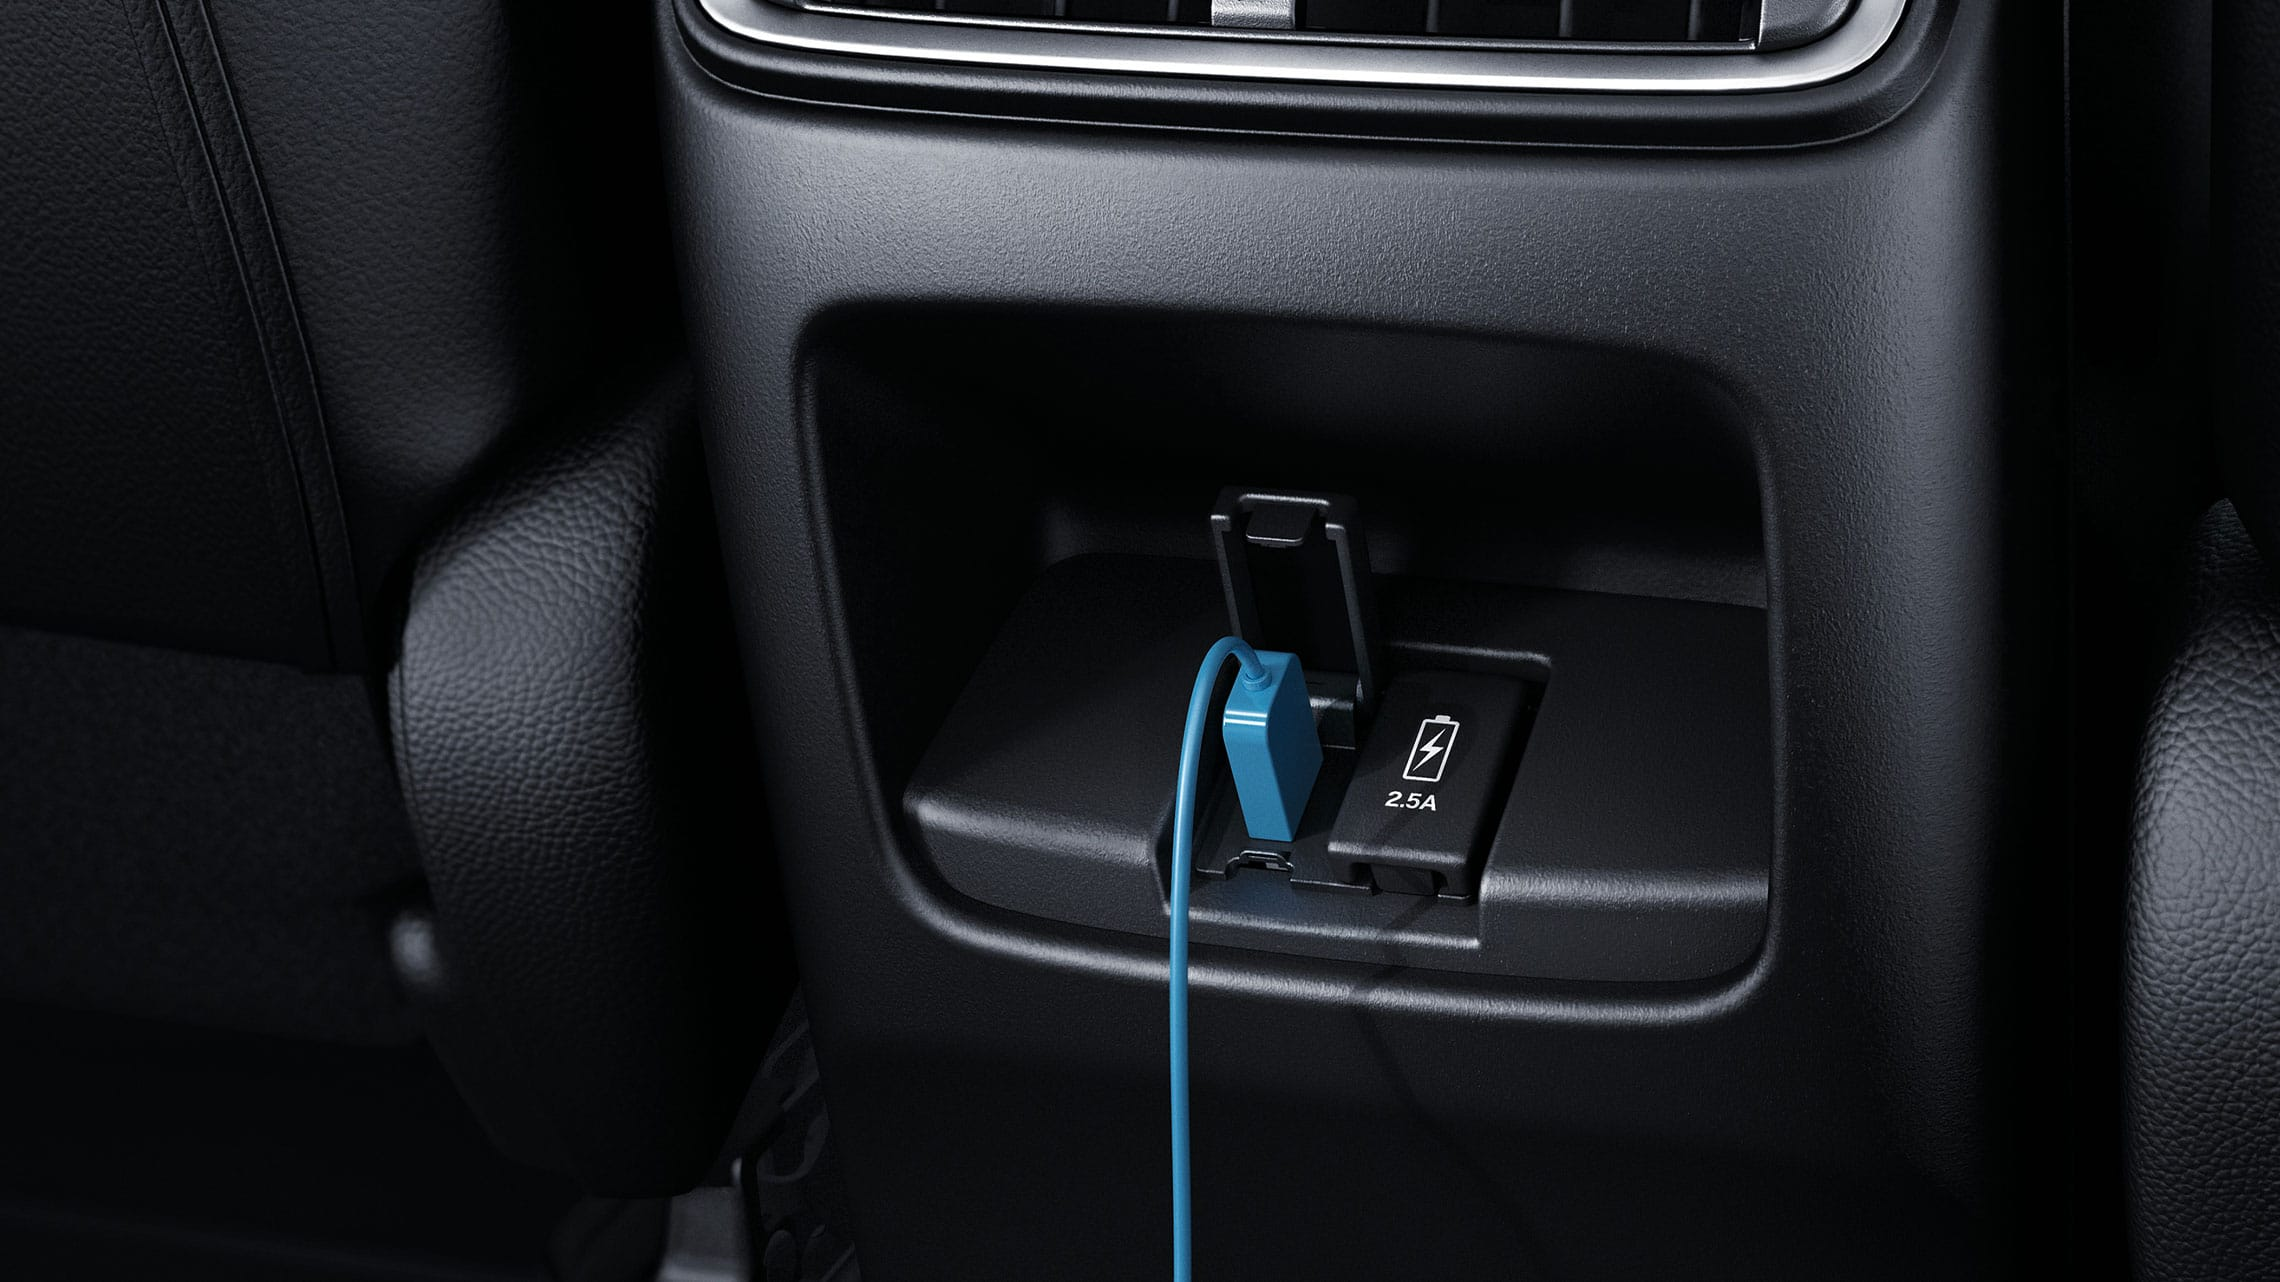 Interior view of rear USB ports in the 2021 Honda CR-V.